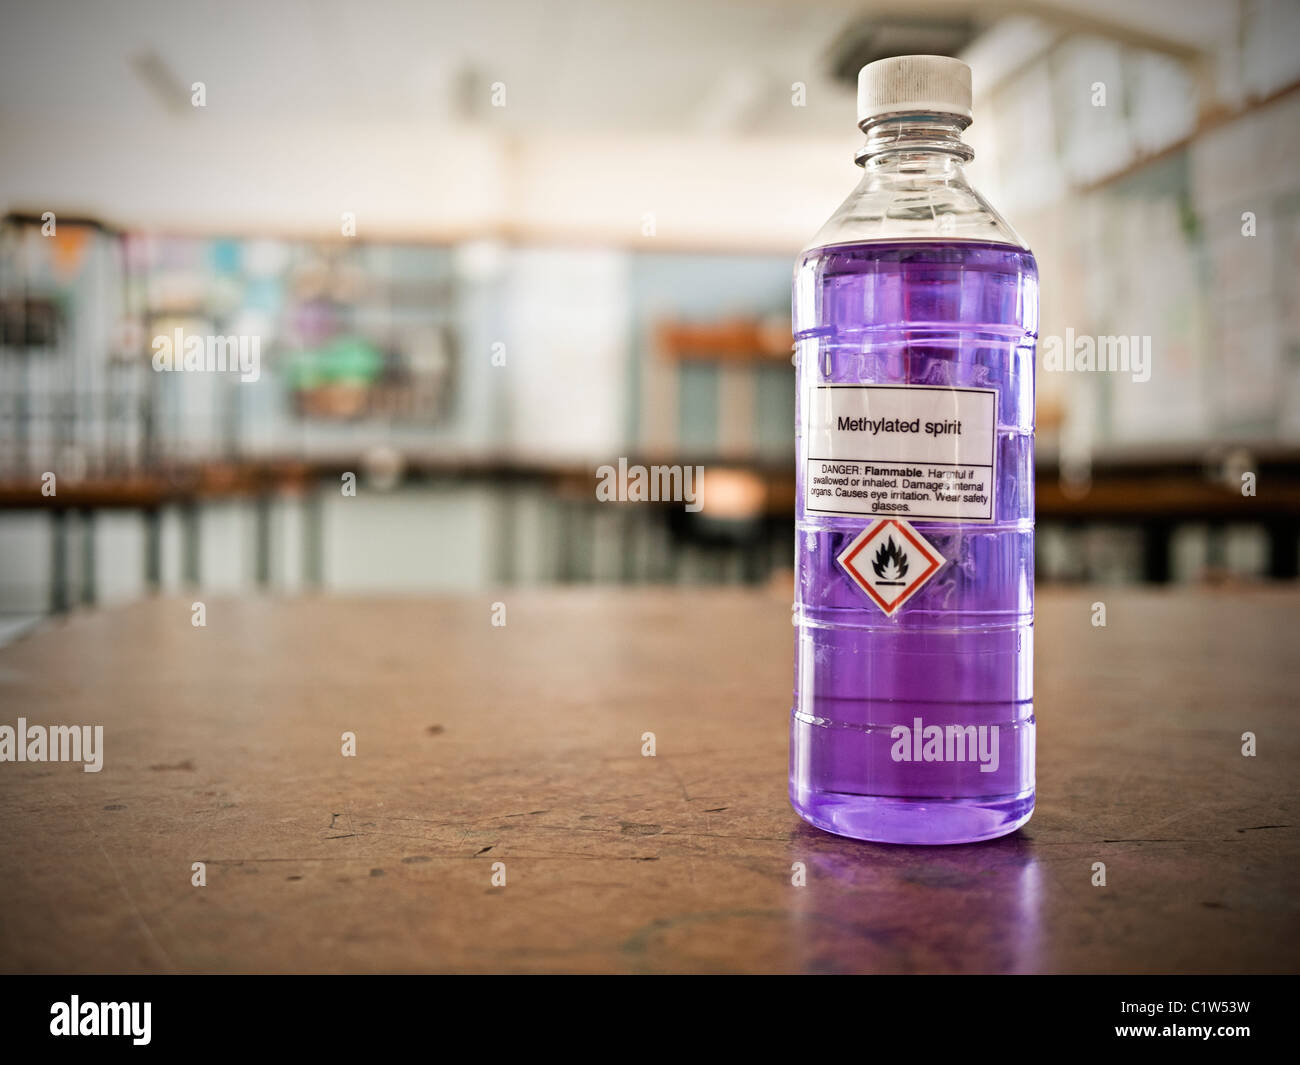 Methylated spirits bottle in school science laboratory. - Stock Image